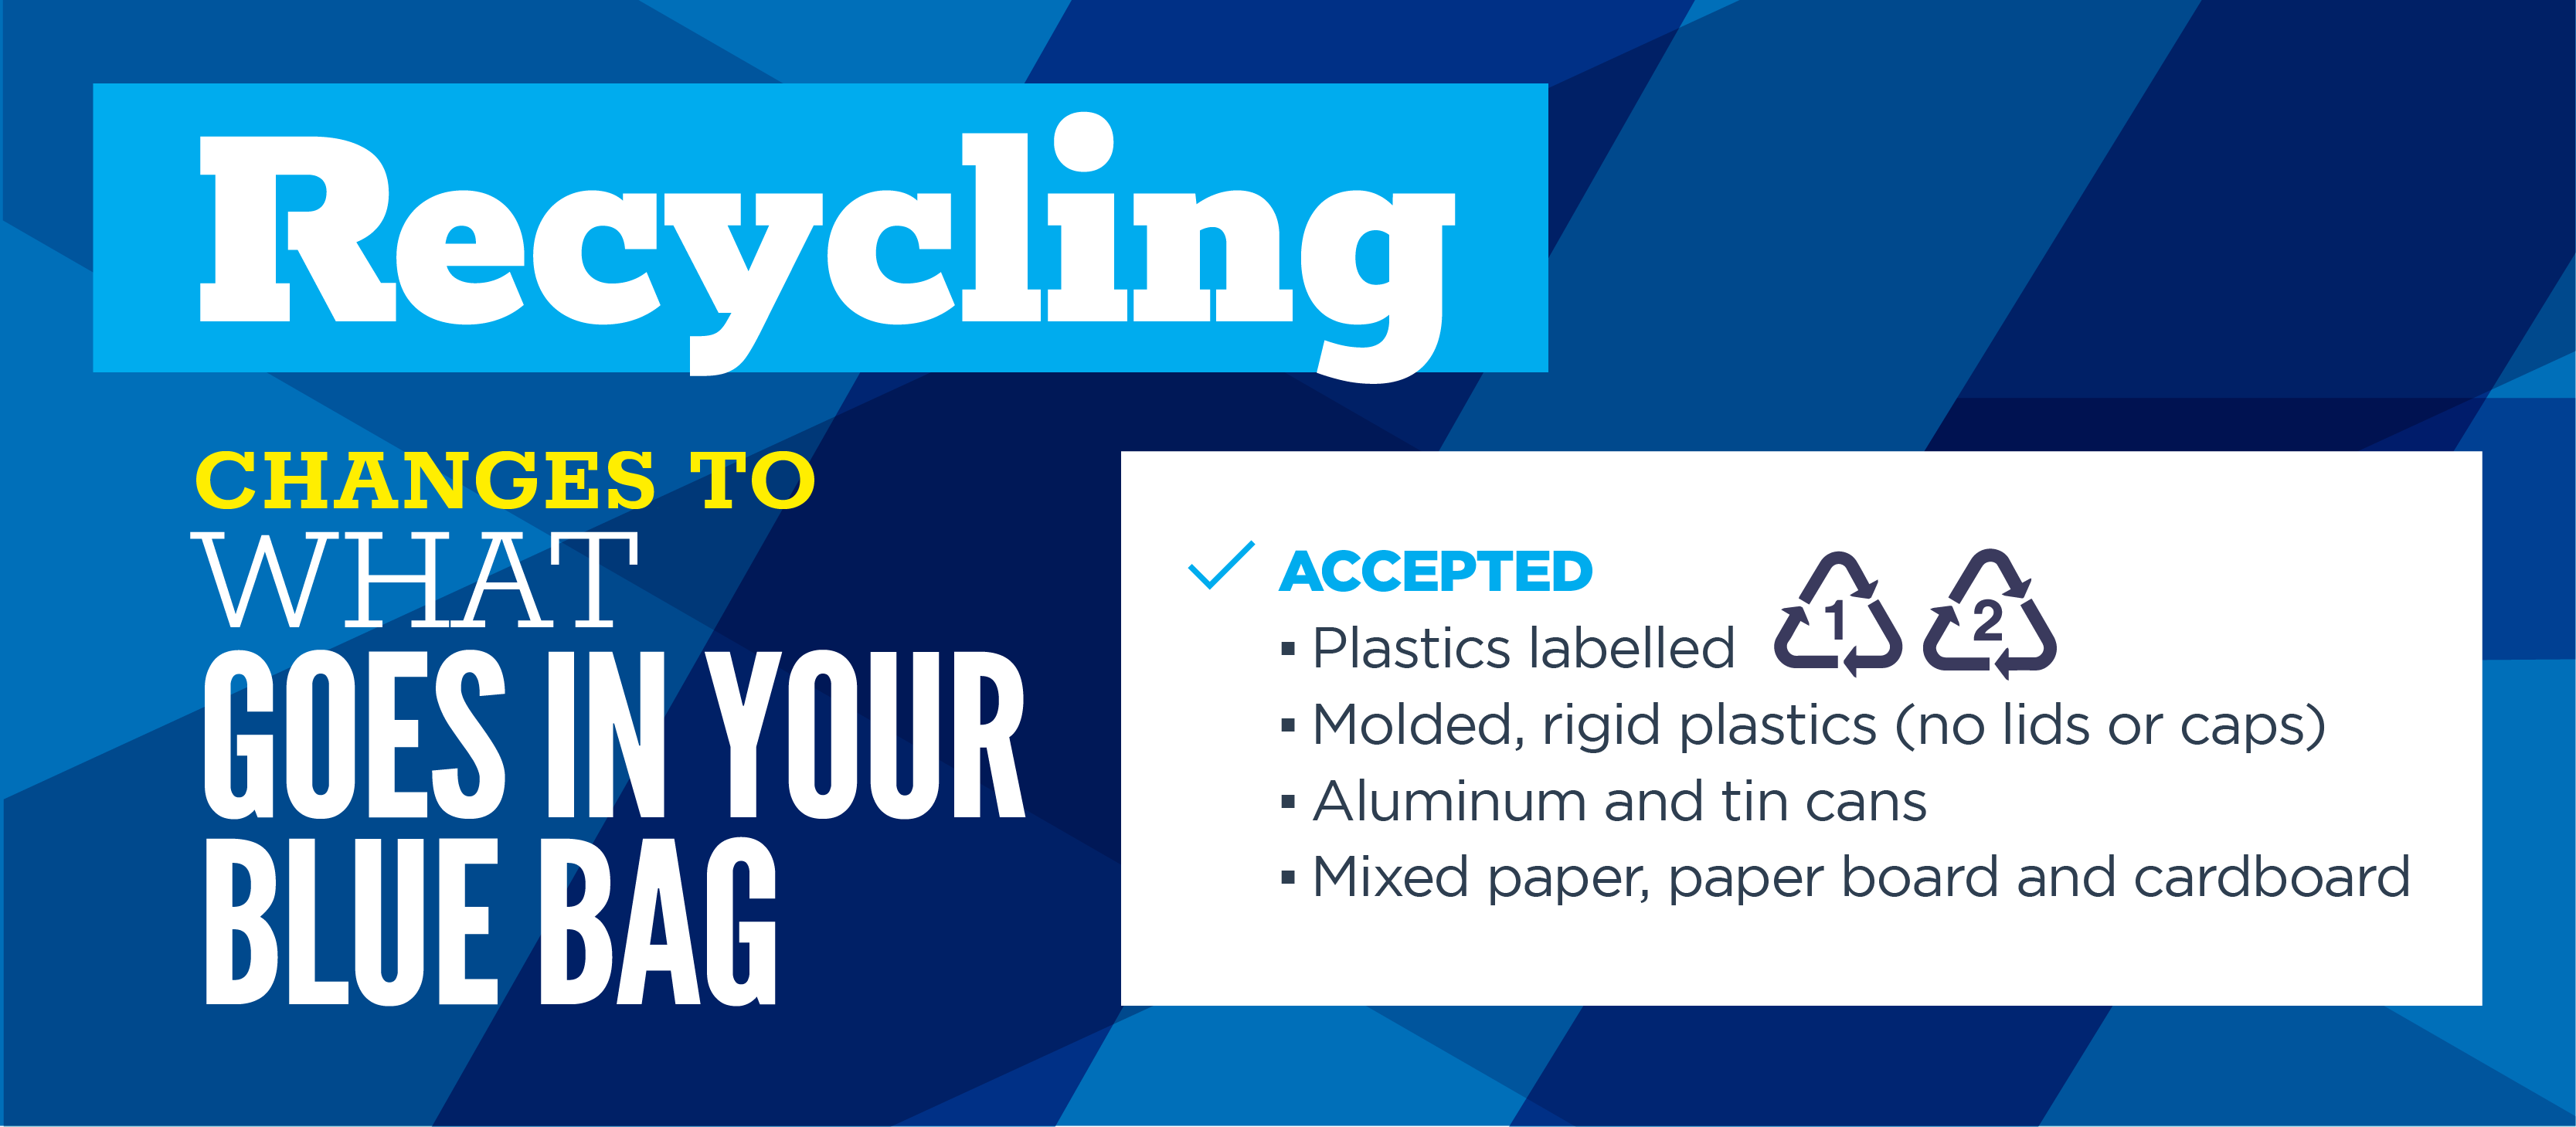 Curbside recycling changes